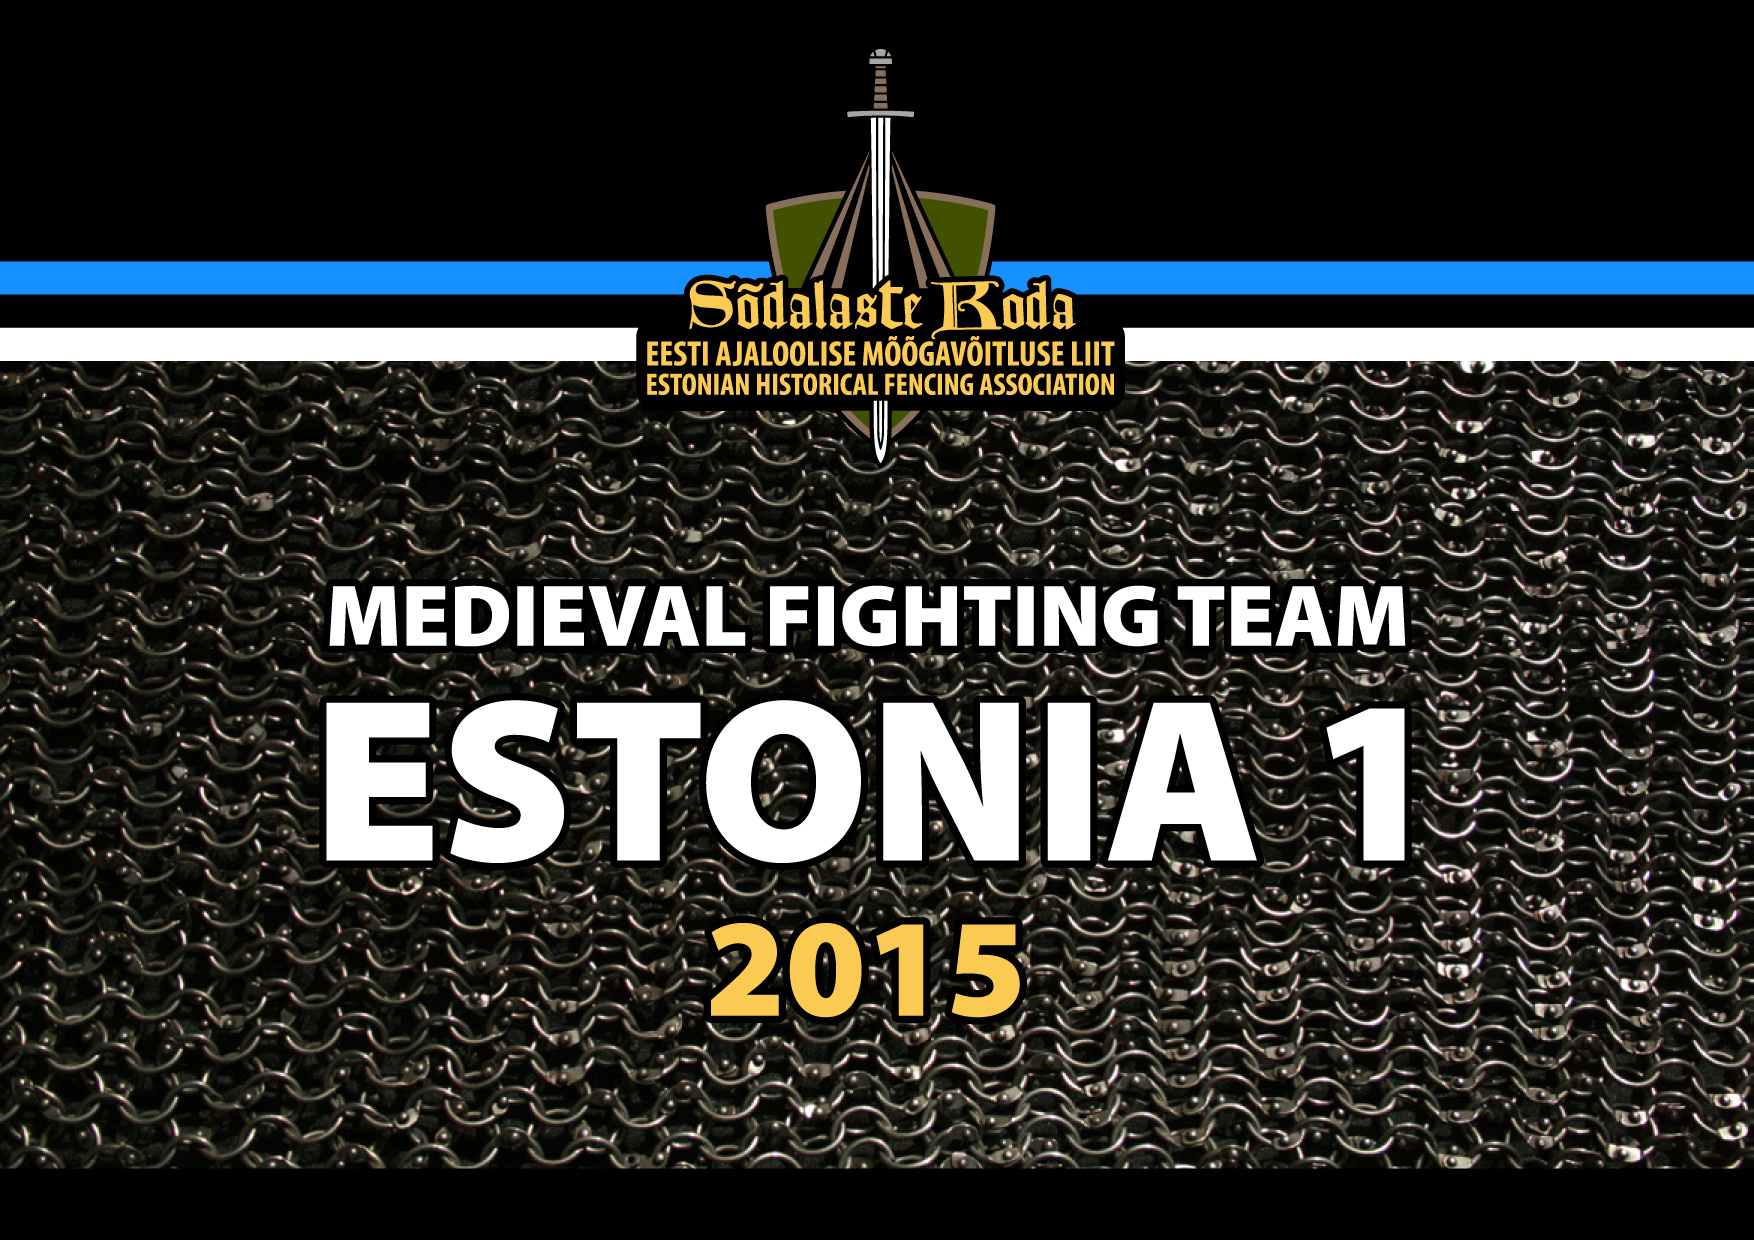 EAML_2015_Team_Estonia_HIGH